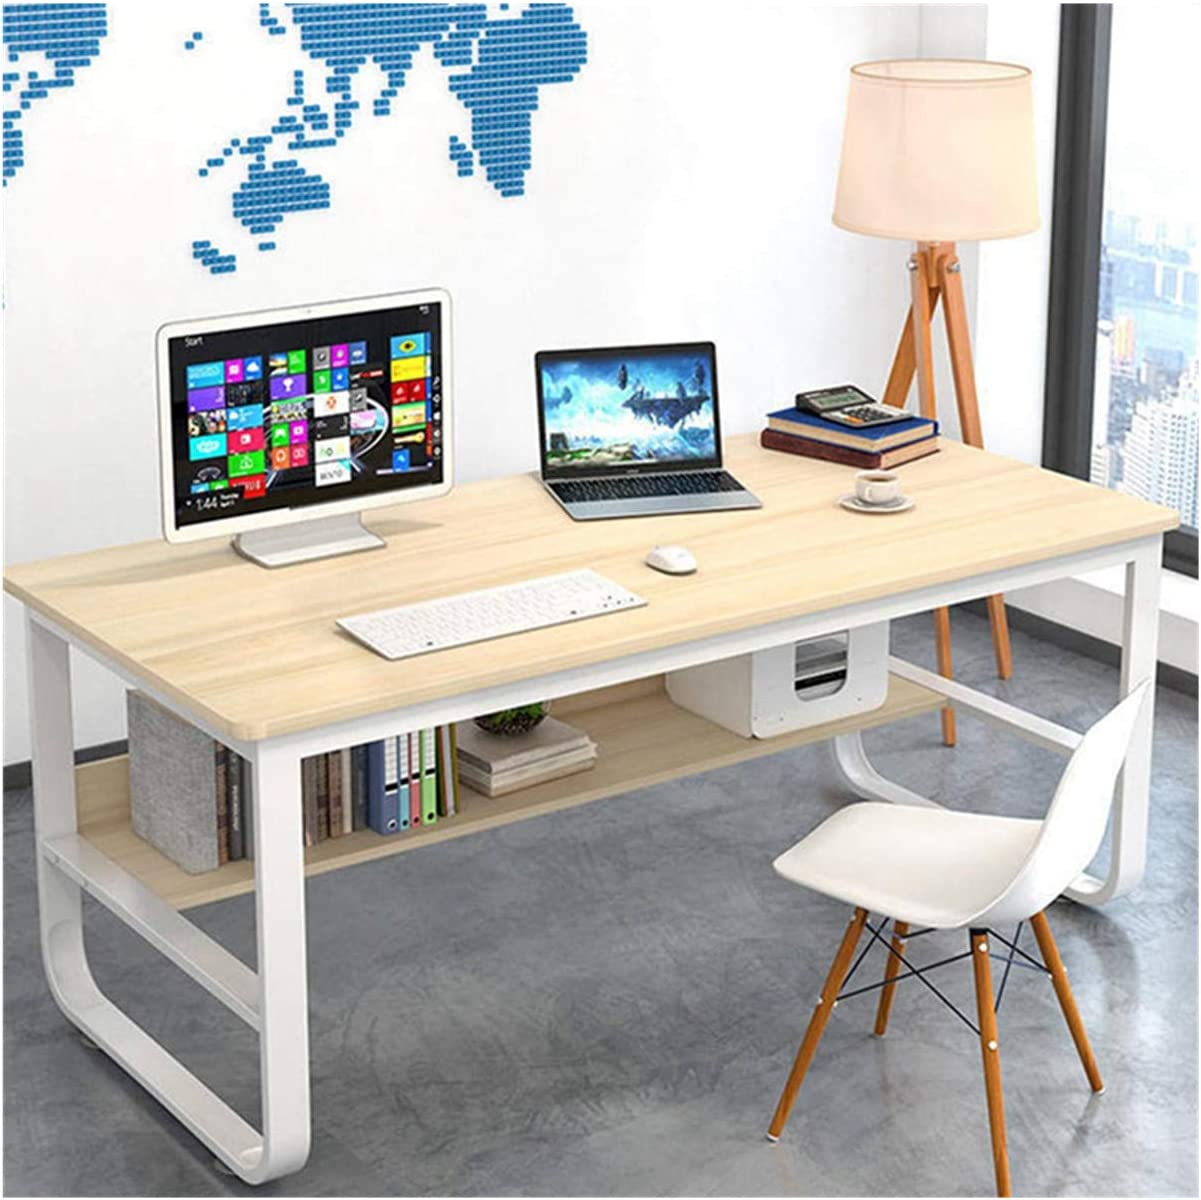 """BOJU Student Computer Gaming Writing Desk Table Workstation Walnut for Modern Home Office Meeting Room Large Simple Wood Metal Frame Study Bedroom Dormitory Apartment 47/"""""""